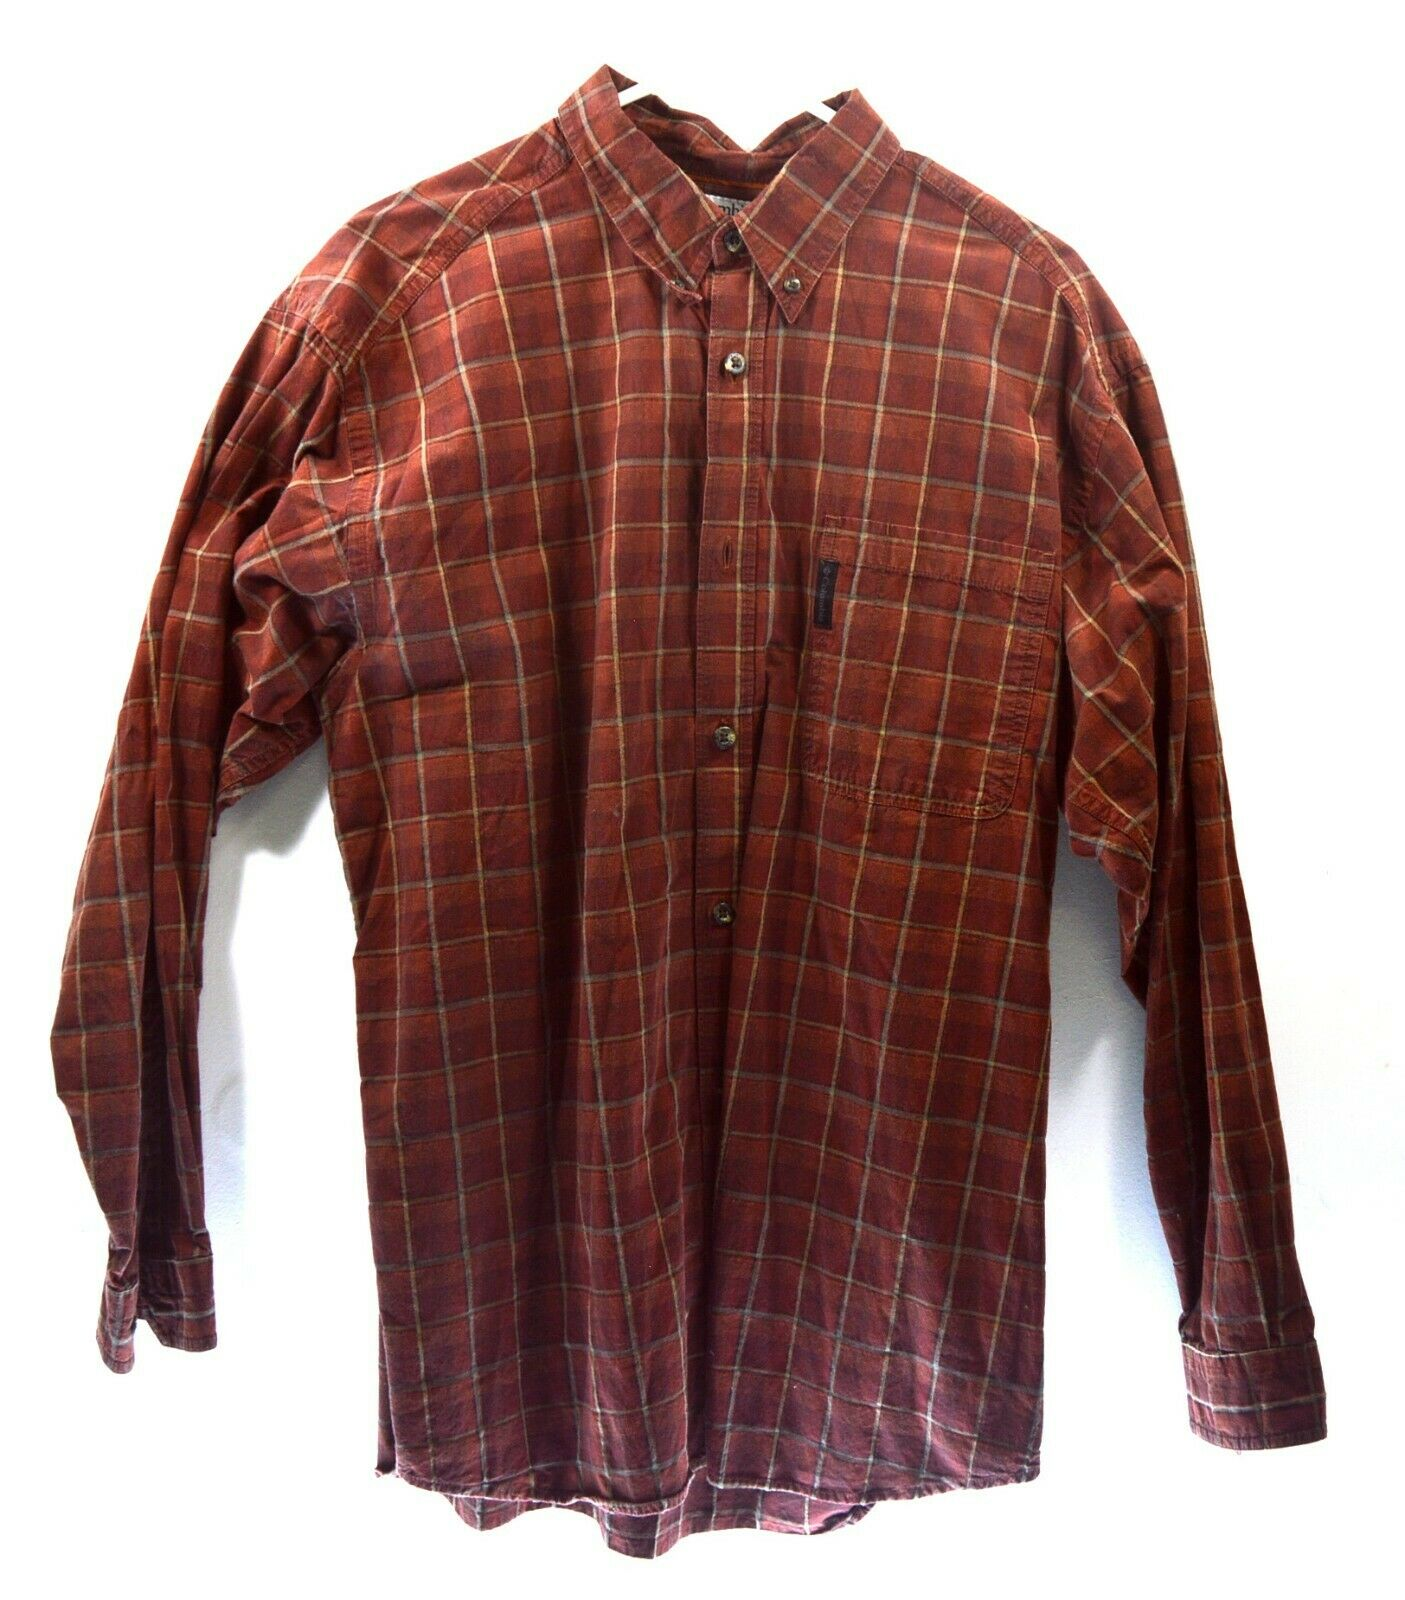 Columbia Red Button Down Shirt - XLarge - Plaid - Long Sleeve